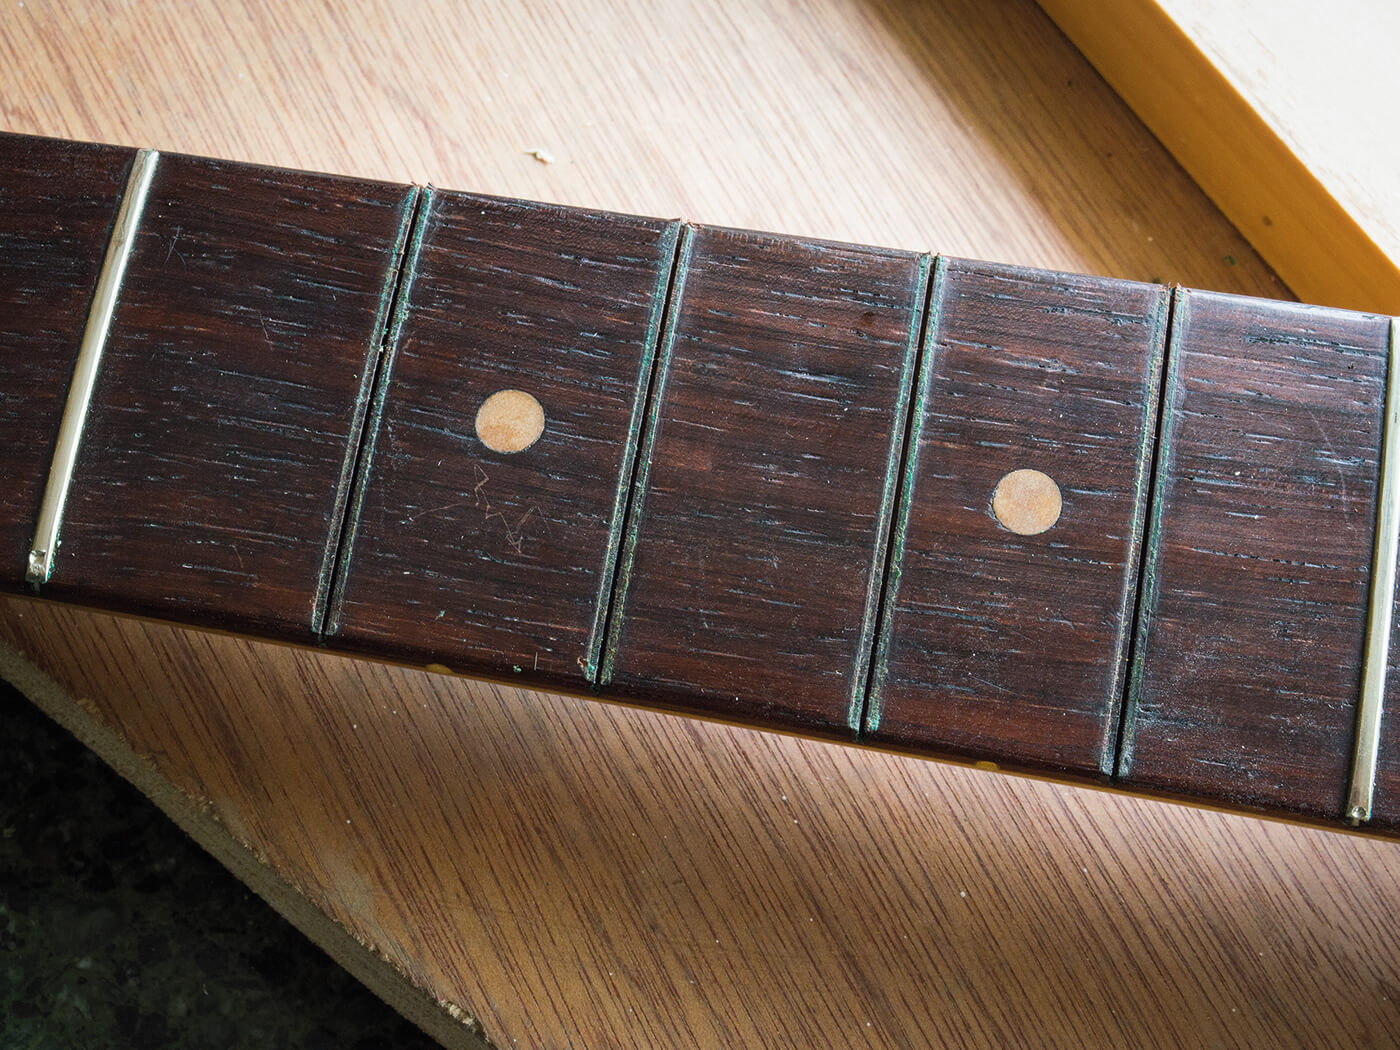 Group of removed frets on Strat fingerboard